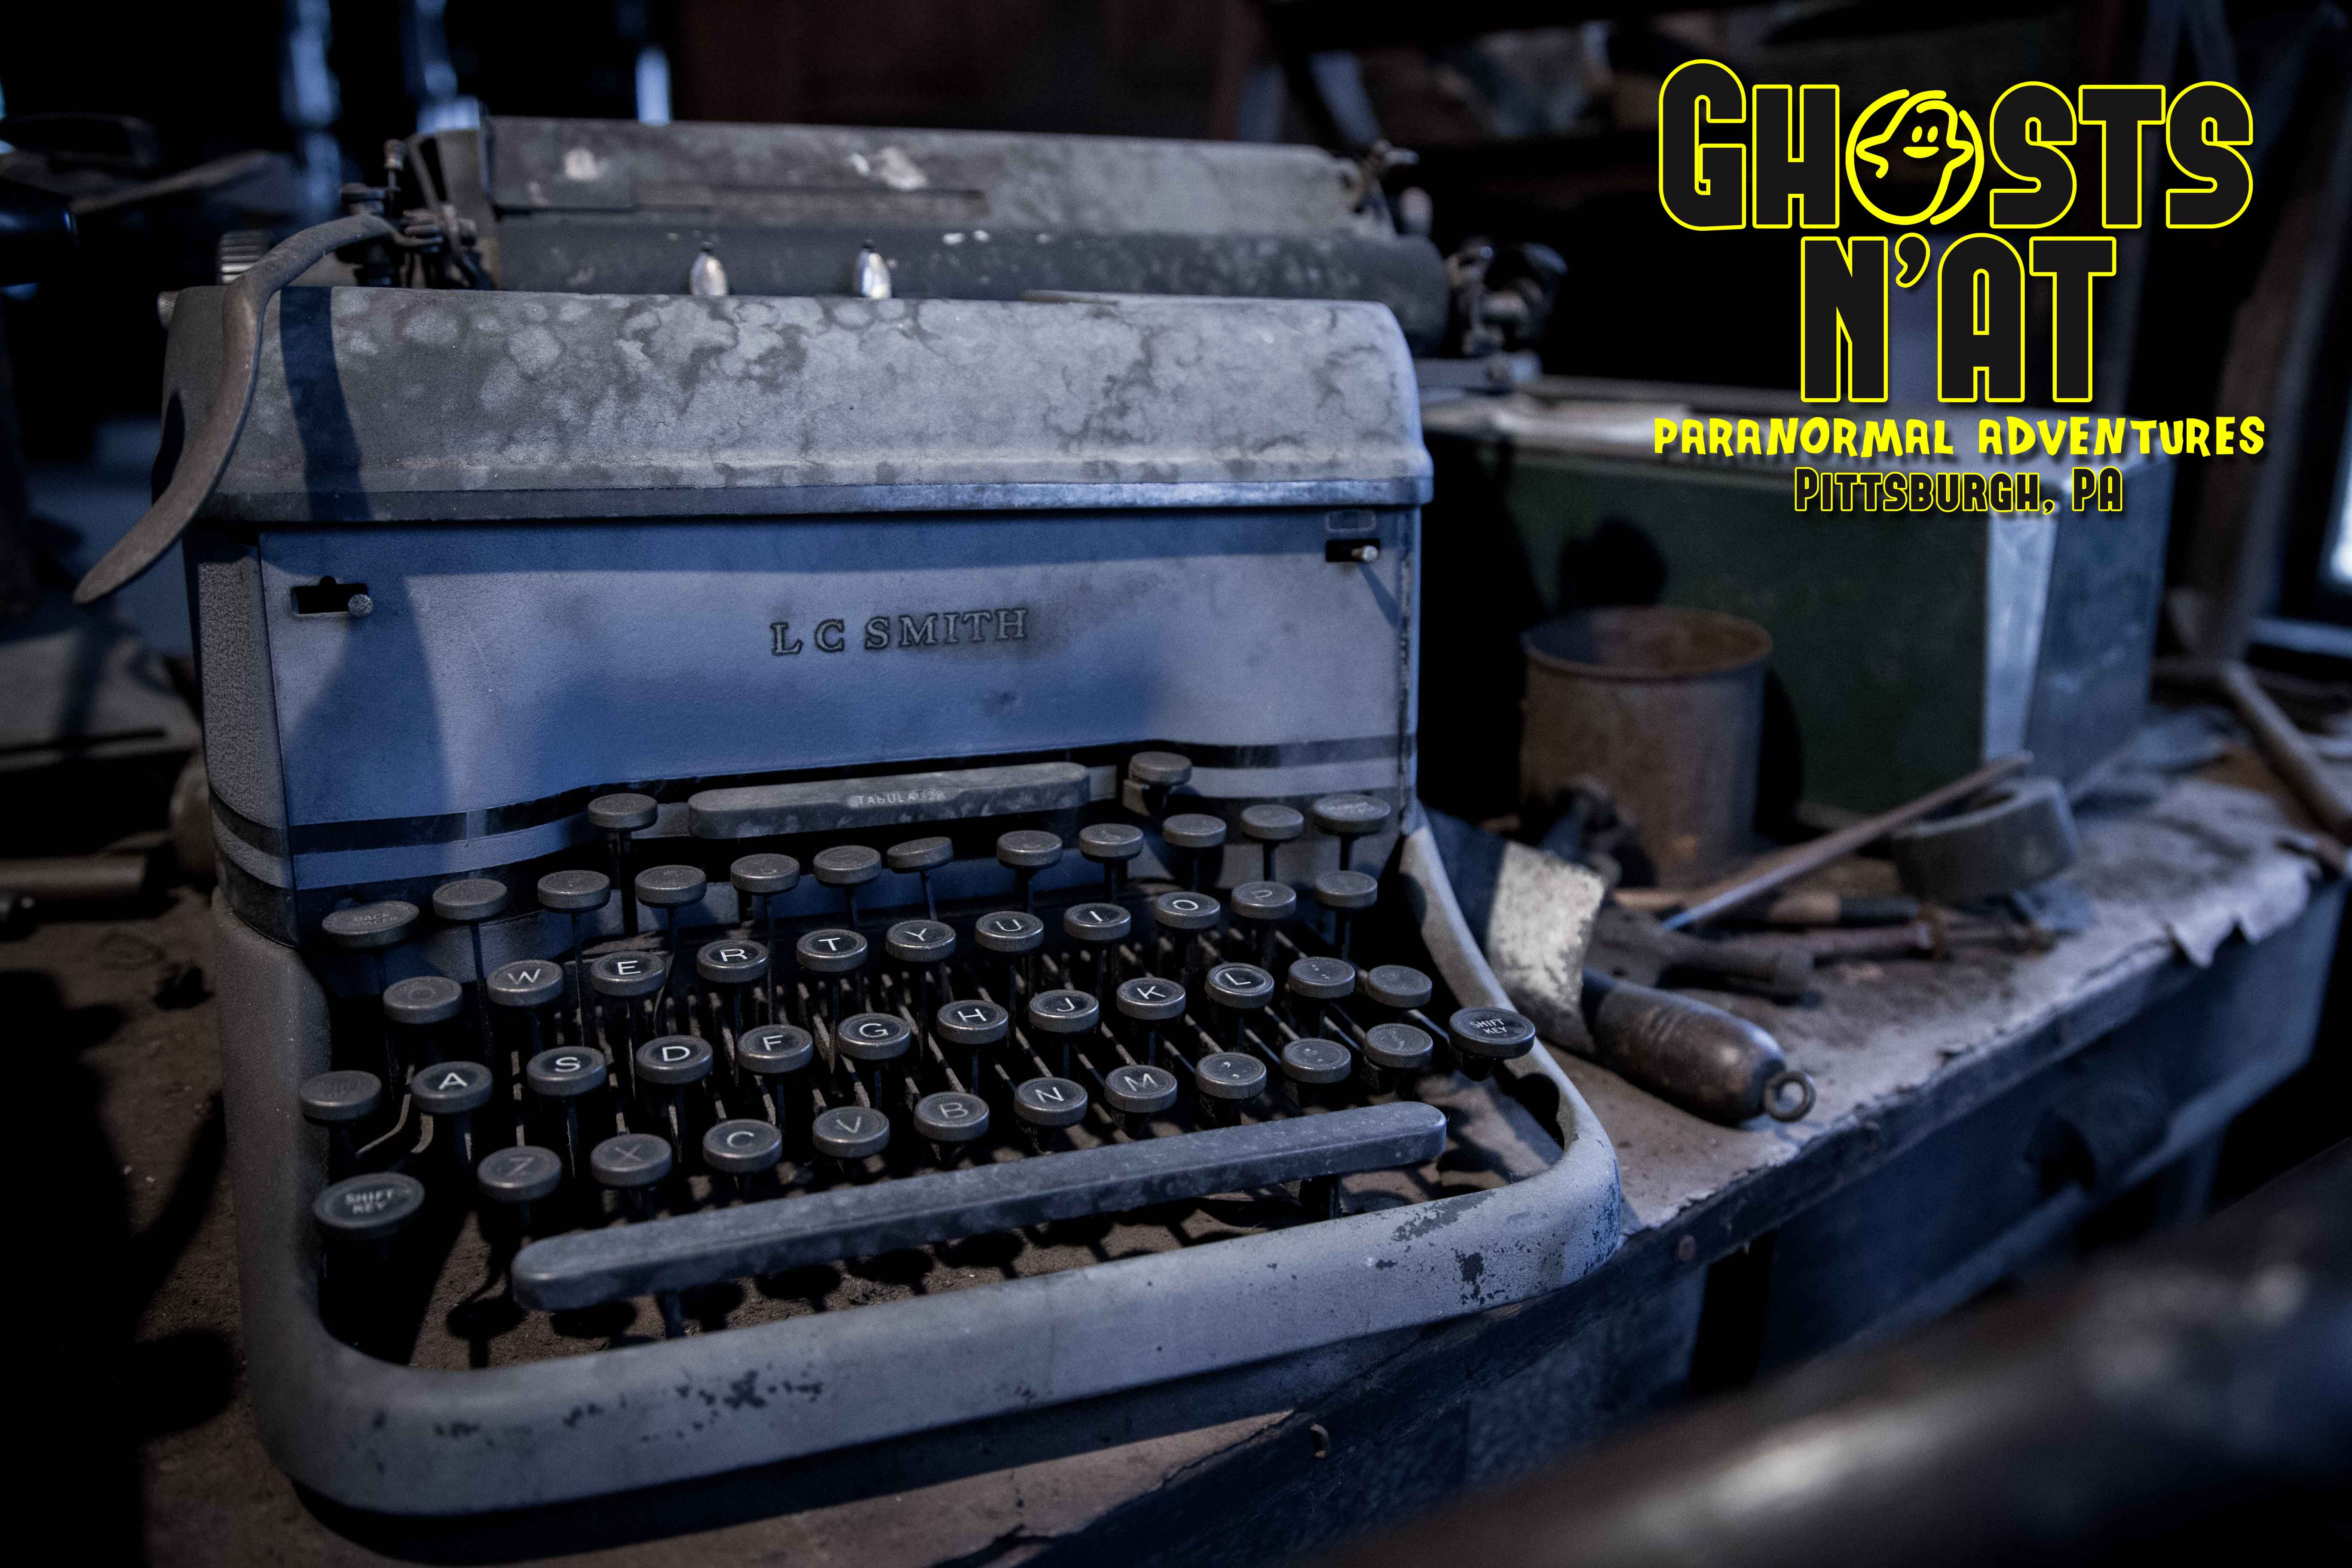 The Foundry | Ghosts N'at | The #1 Ghost Hunting Event Company!